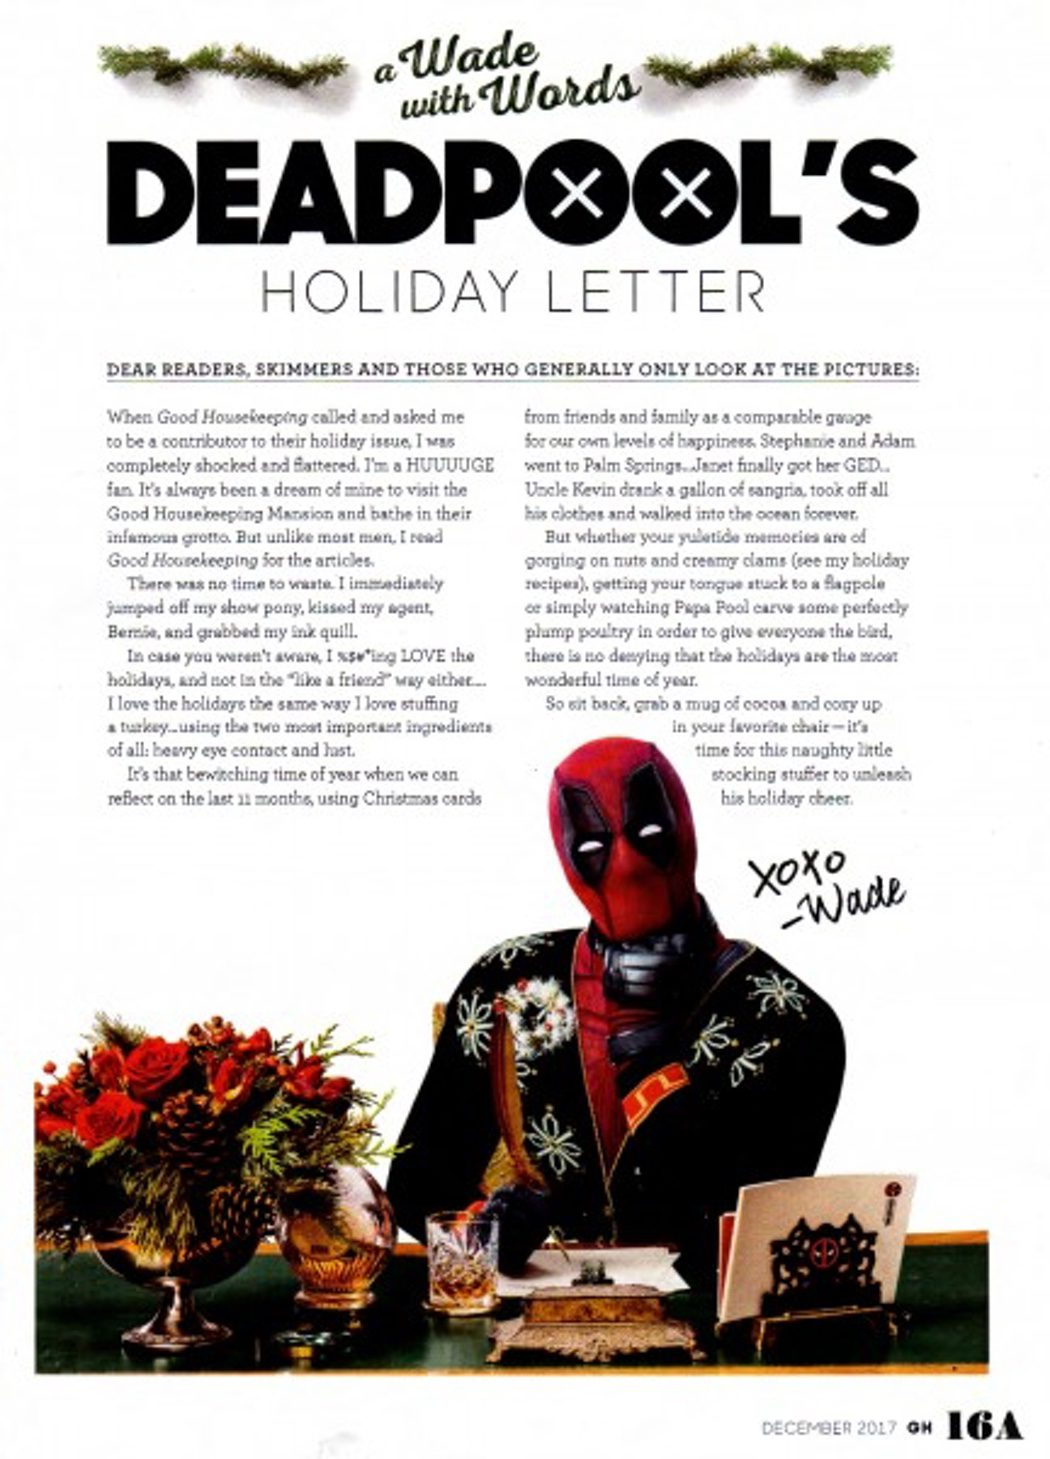 Carta de 'Deadpool' en la revista Good Housekeeping